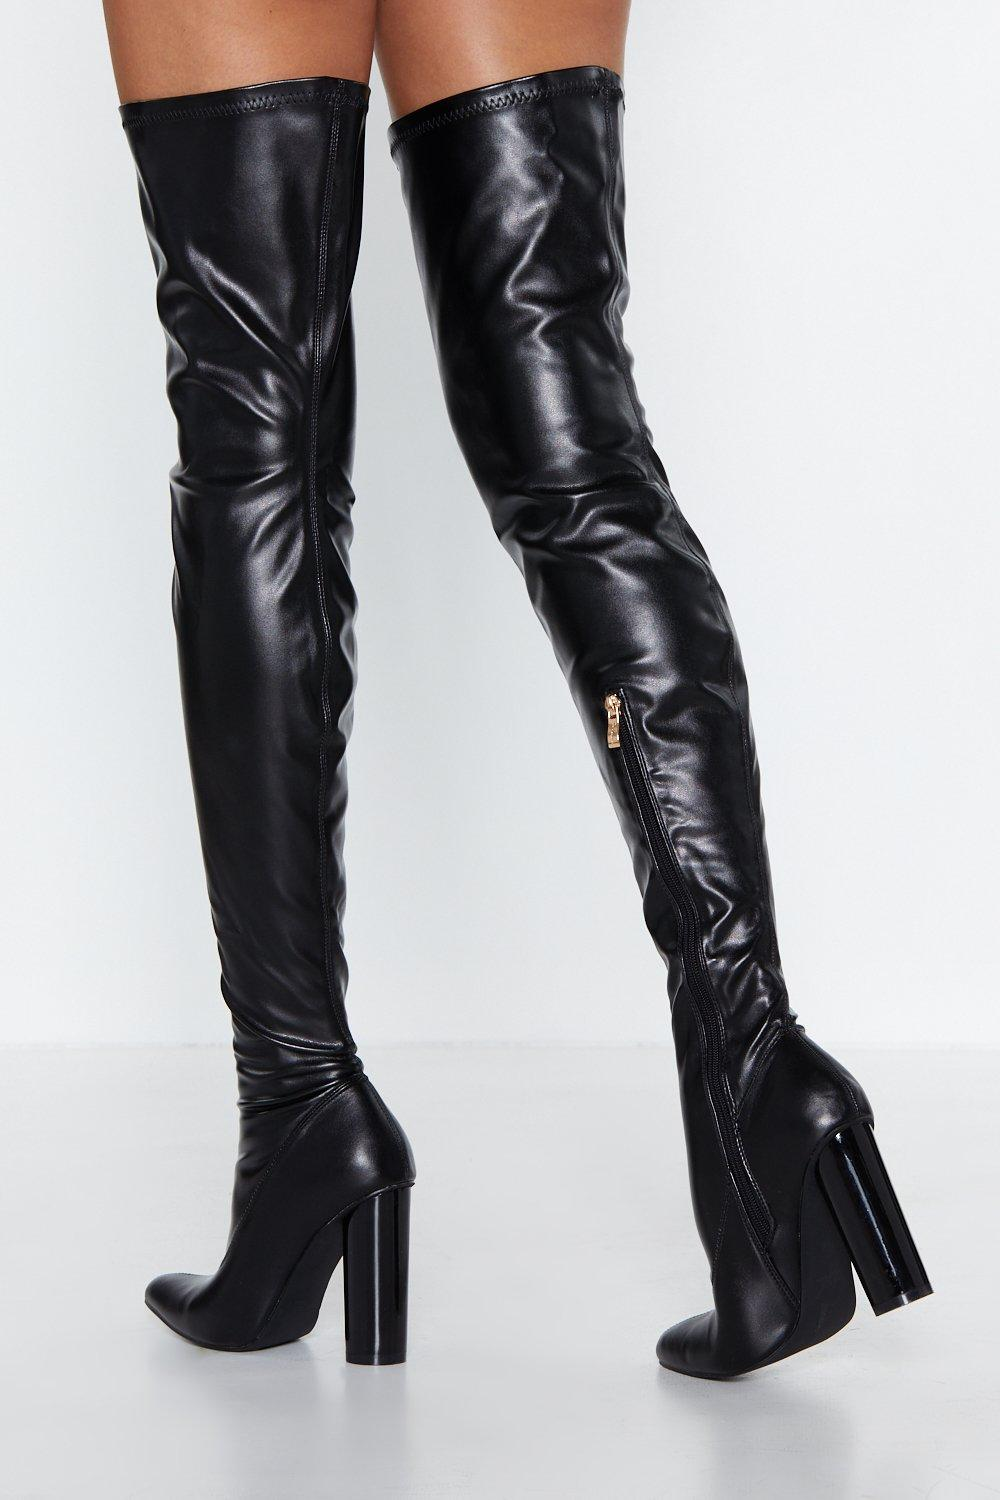 63b65c365f5 Cat Woman Forever Thigh-High Boot. Hover to zoom